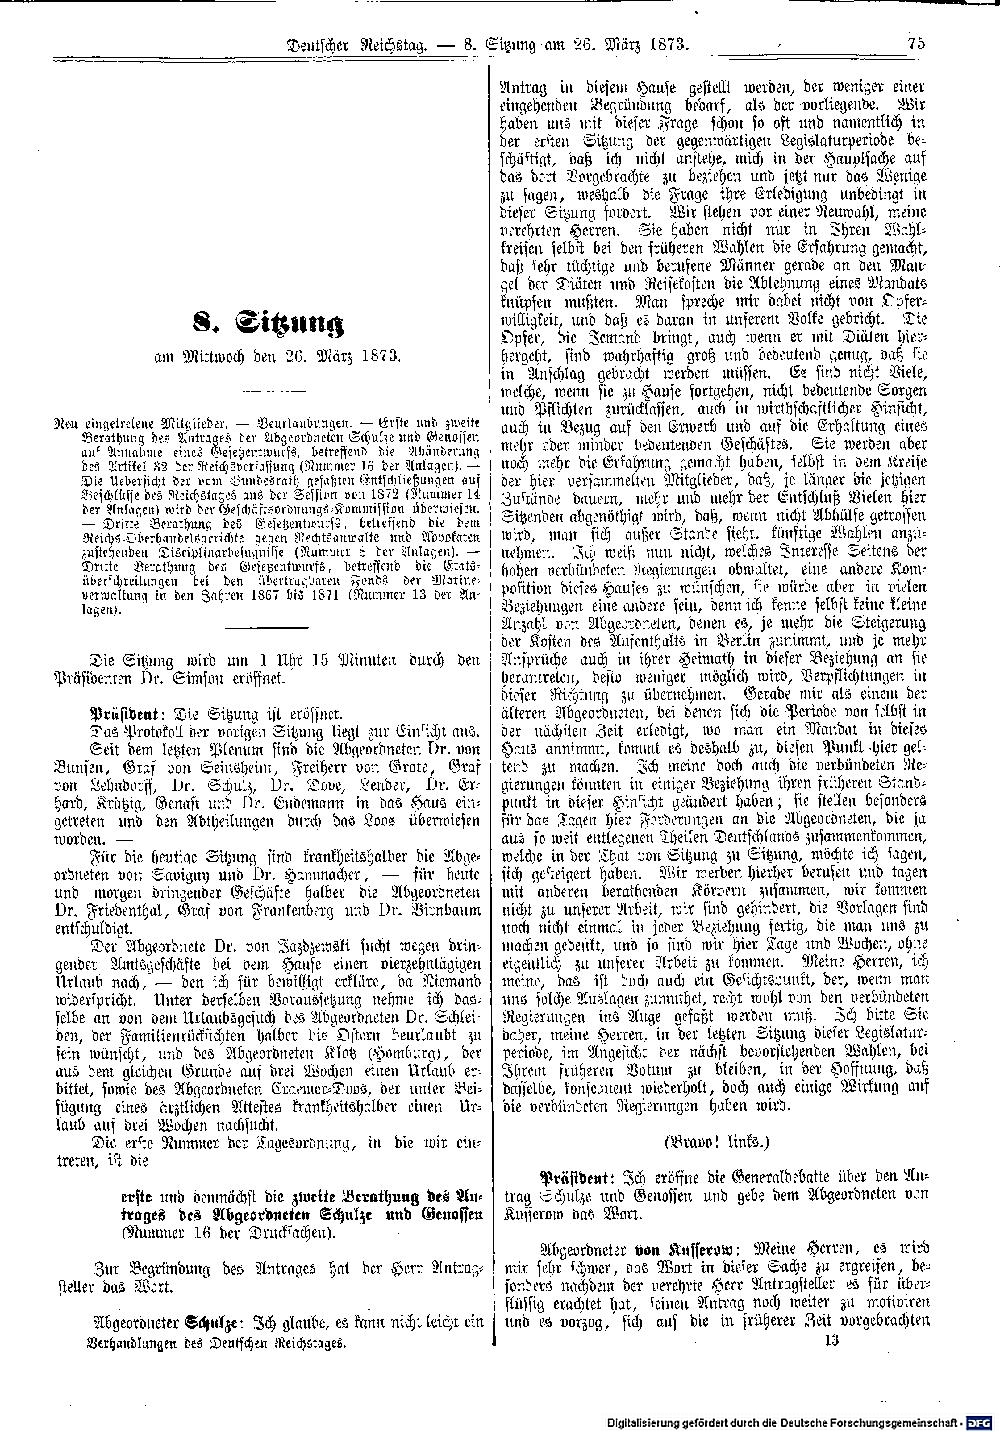 Scan of page 75